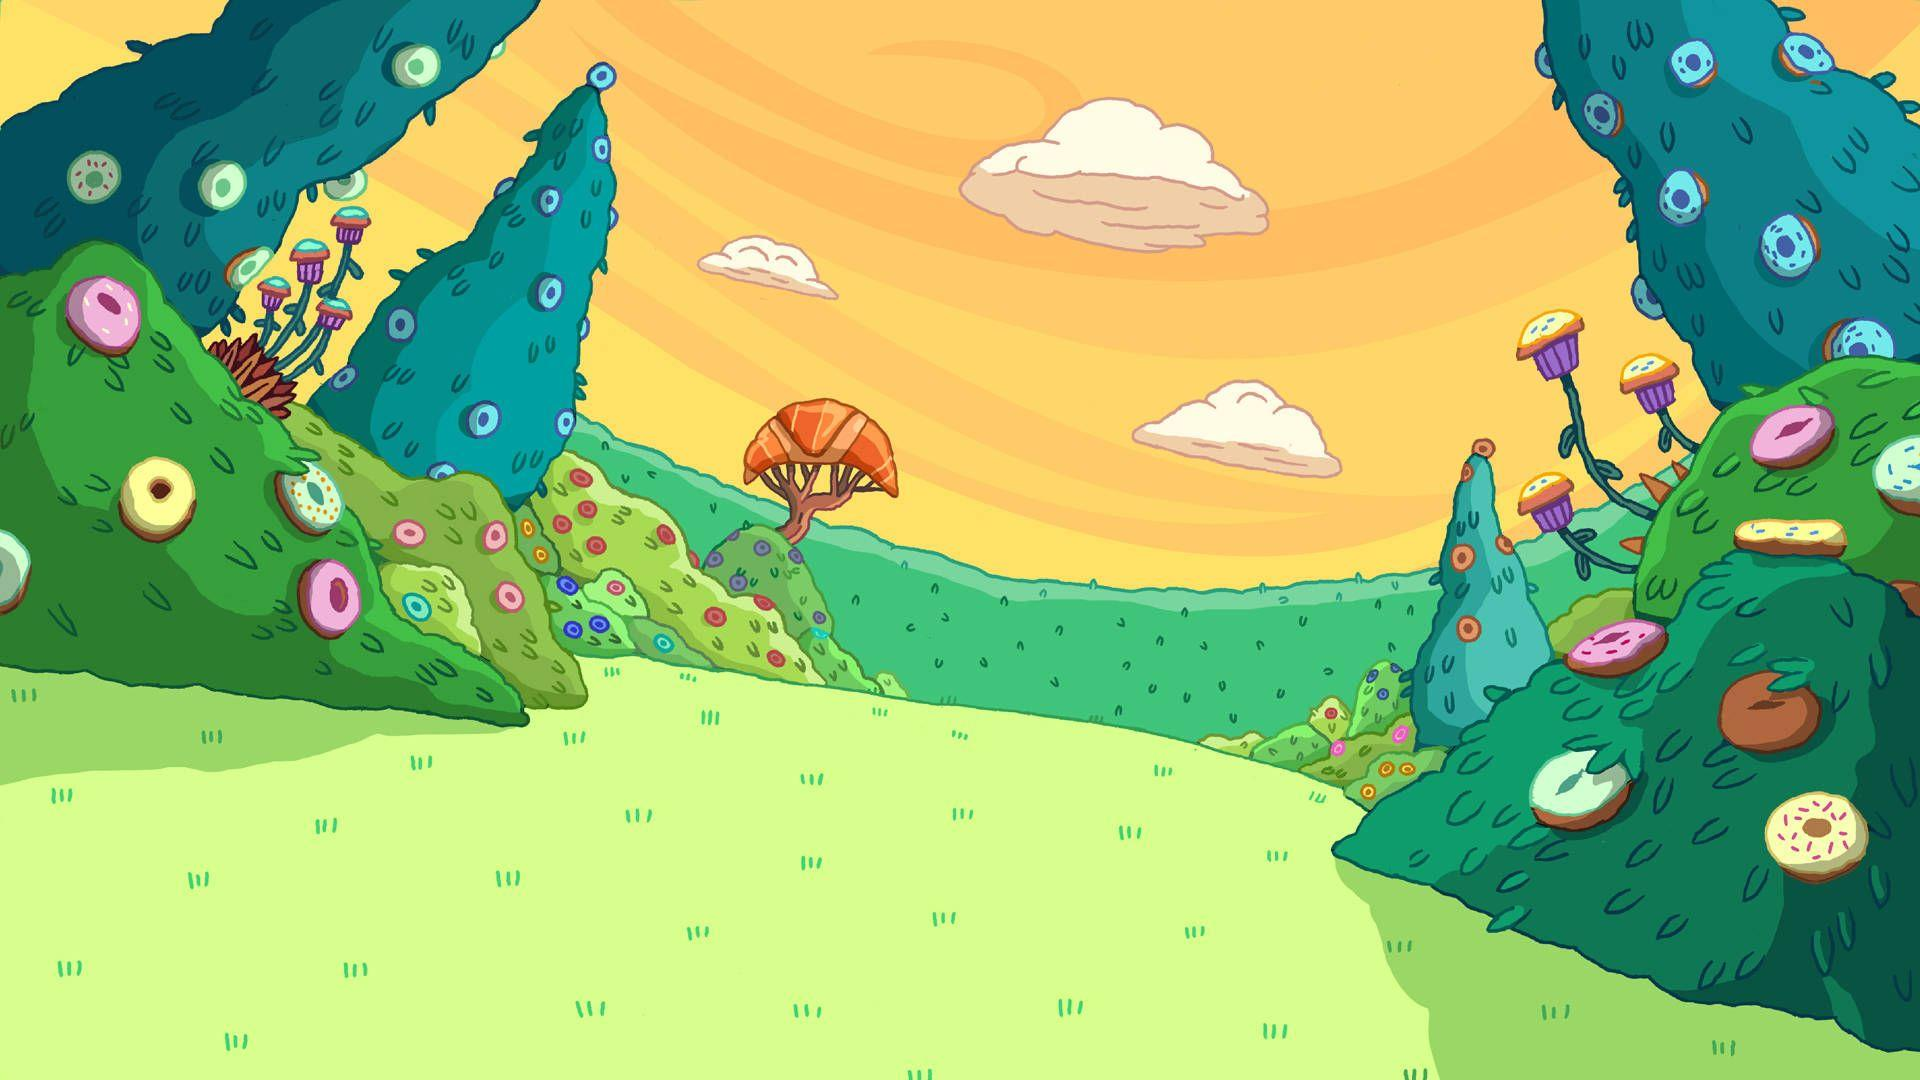 adventure time wallpapers download - photo #20